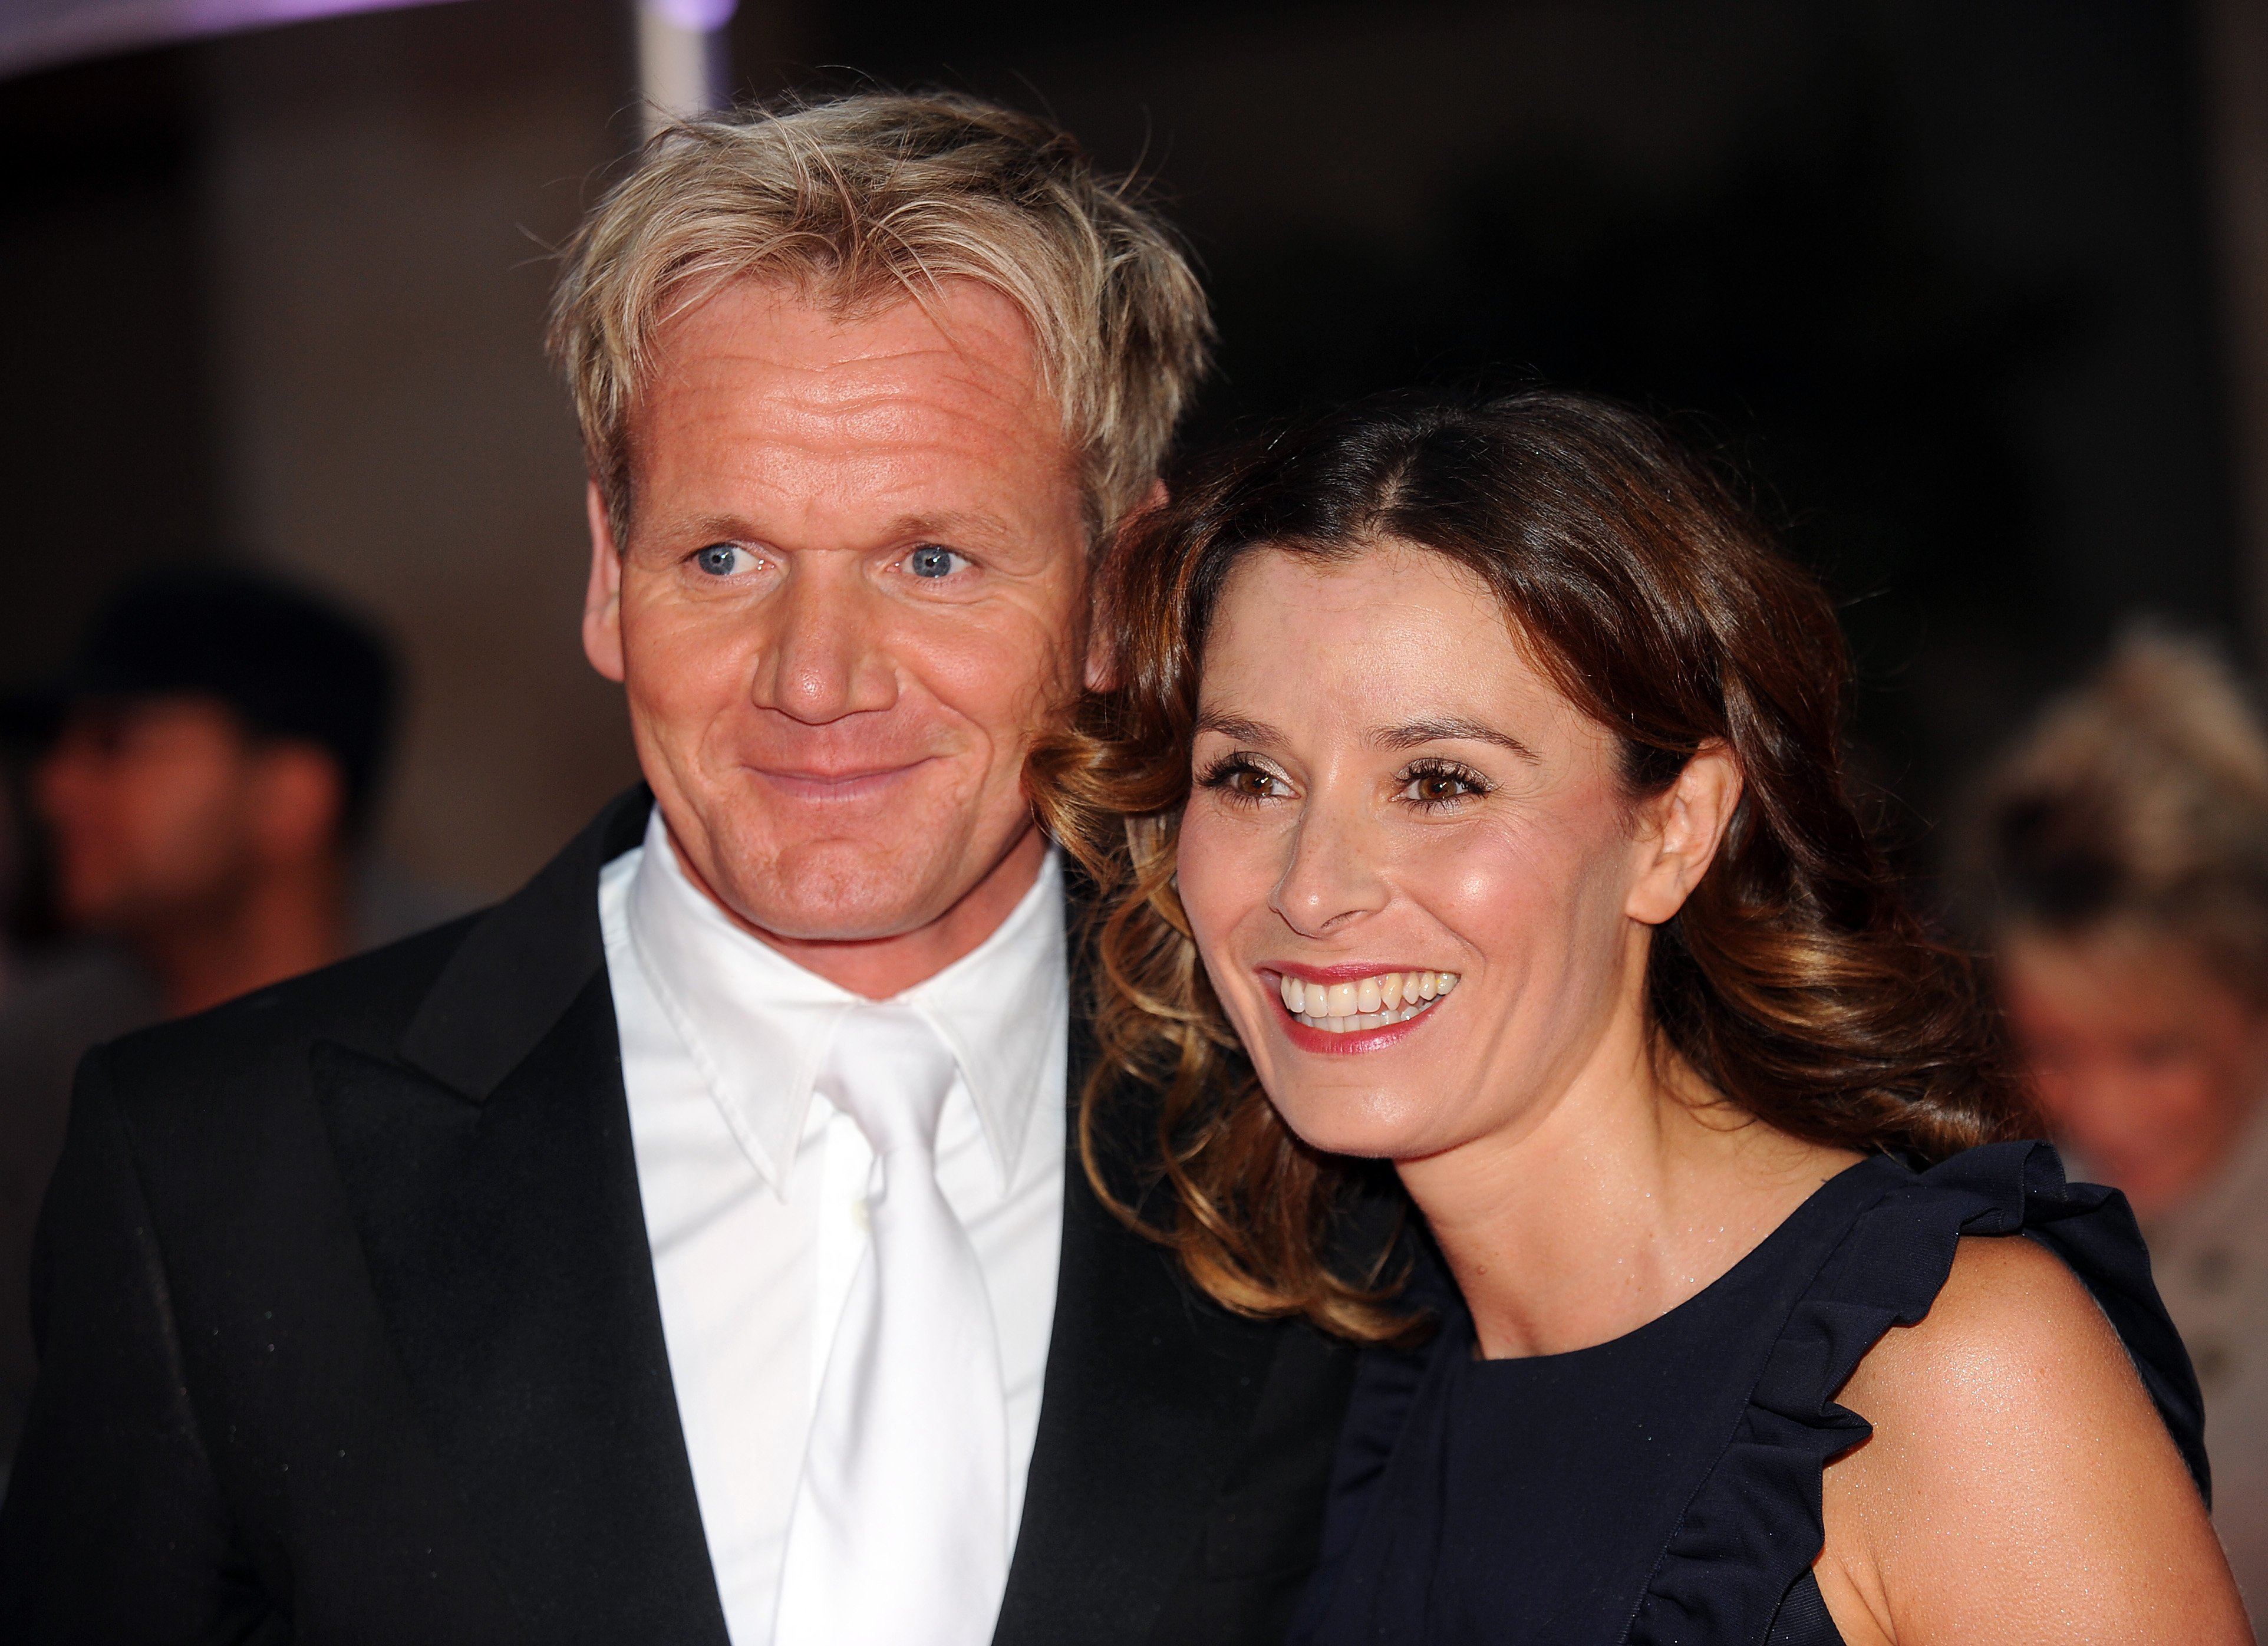 Gordon Ramsay and his wife Tana attend the Pride of Britain Awards in London on November, 2009. | Photo: Getty Images.